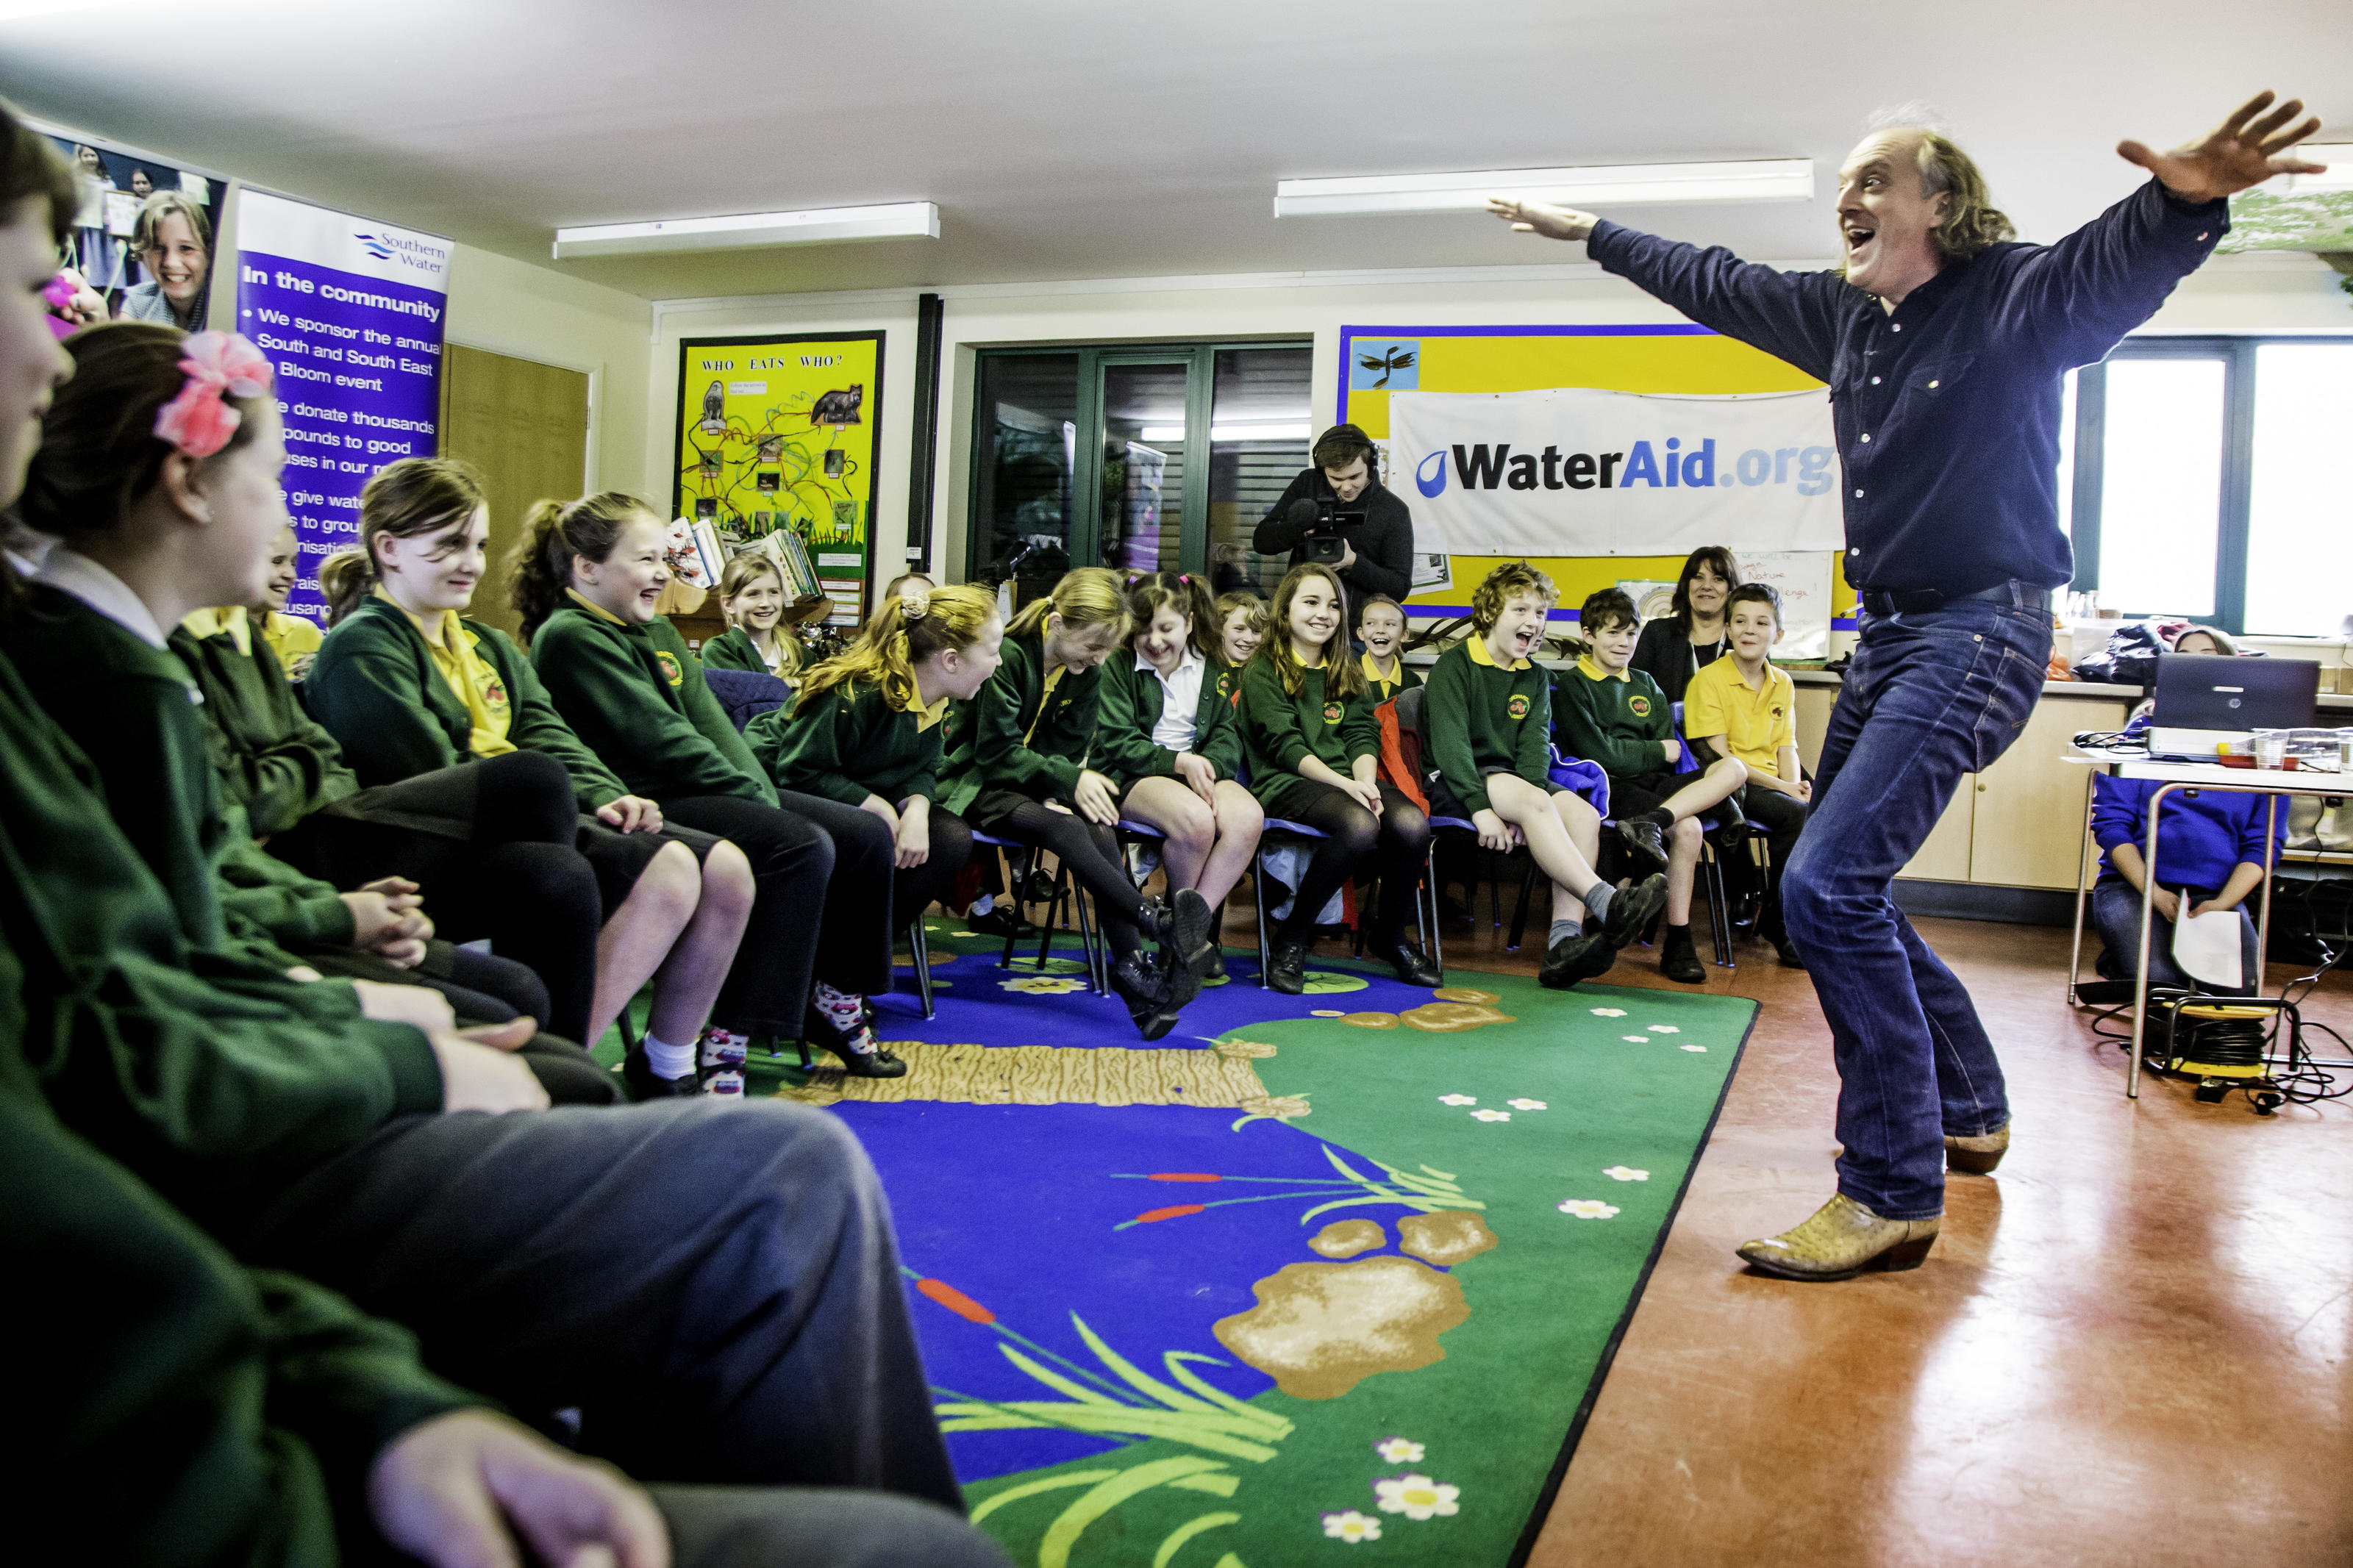 Children celebrate the launch of the WaterAid poetry competition.